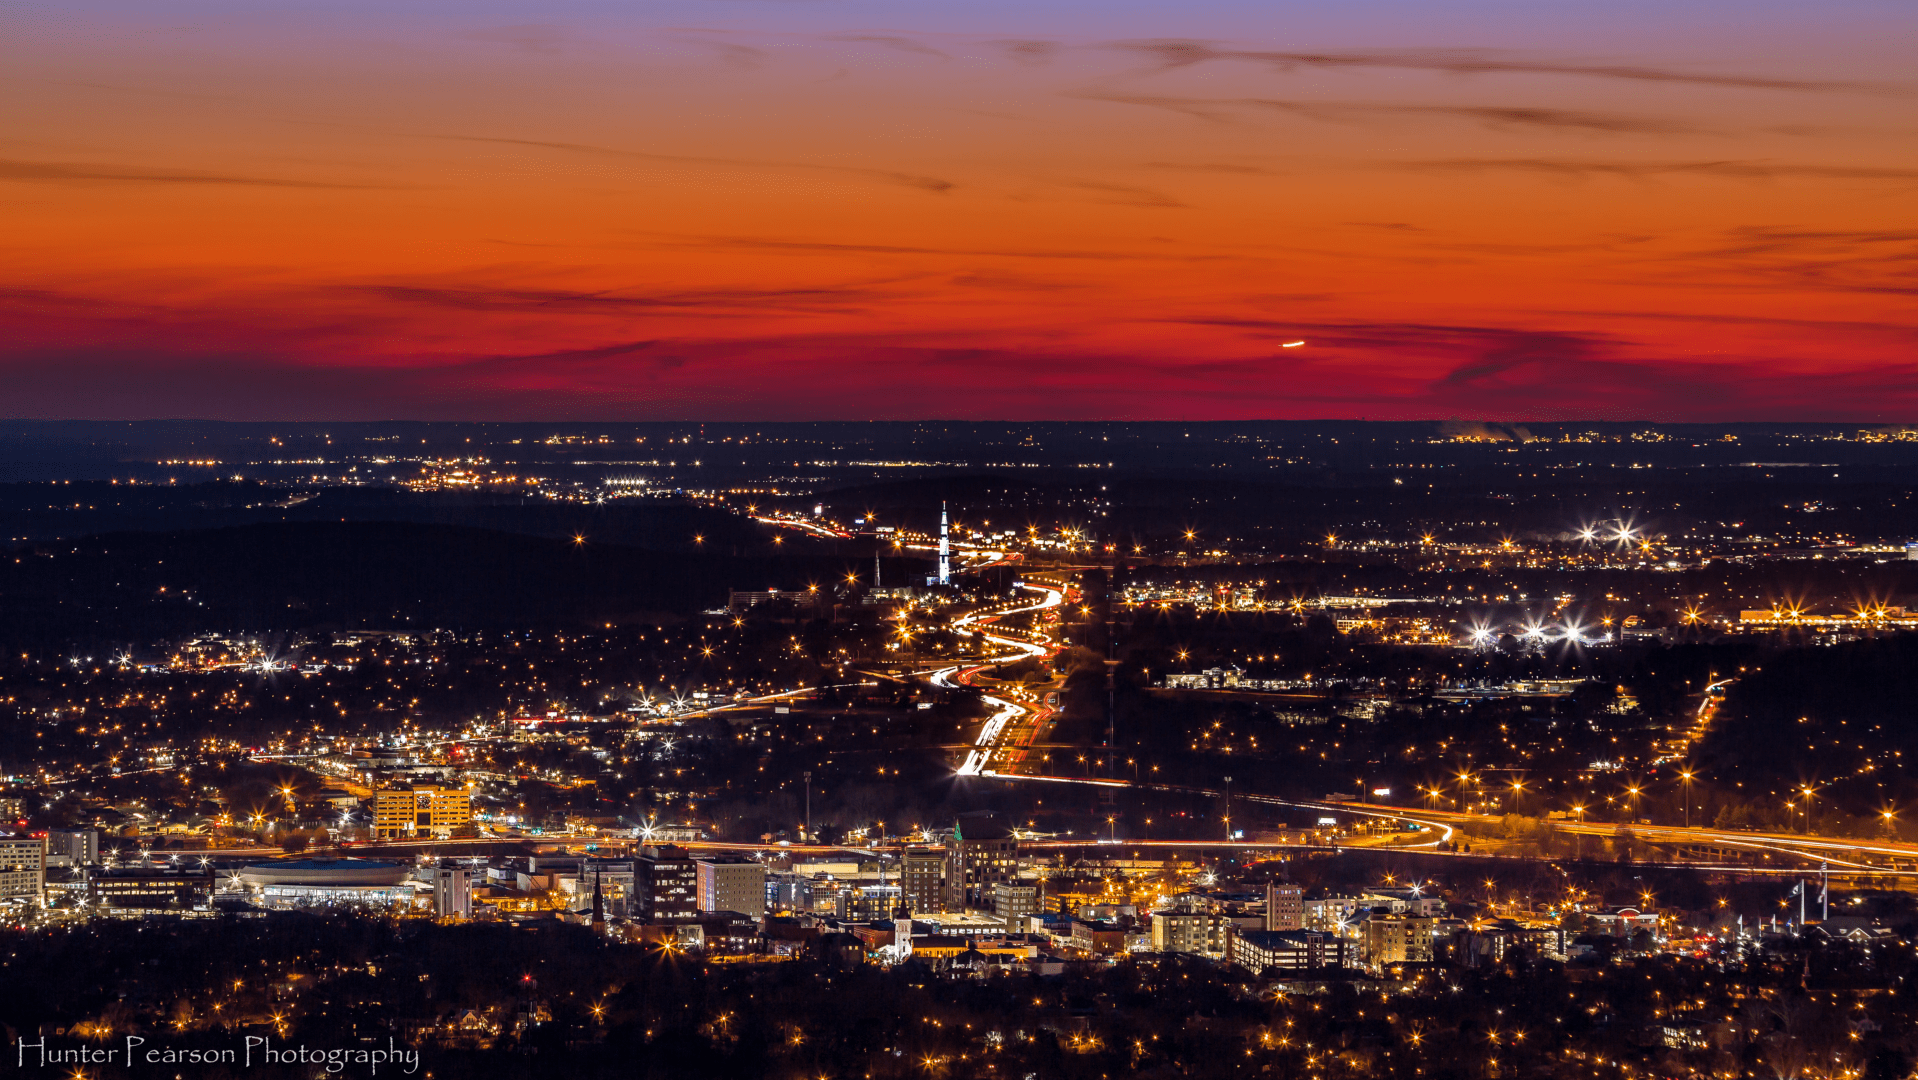 A view of Huntsville at night